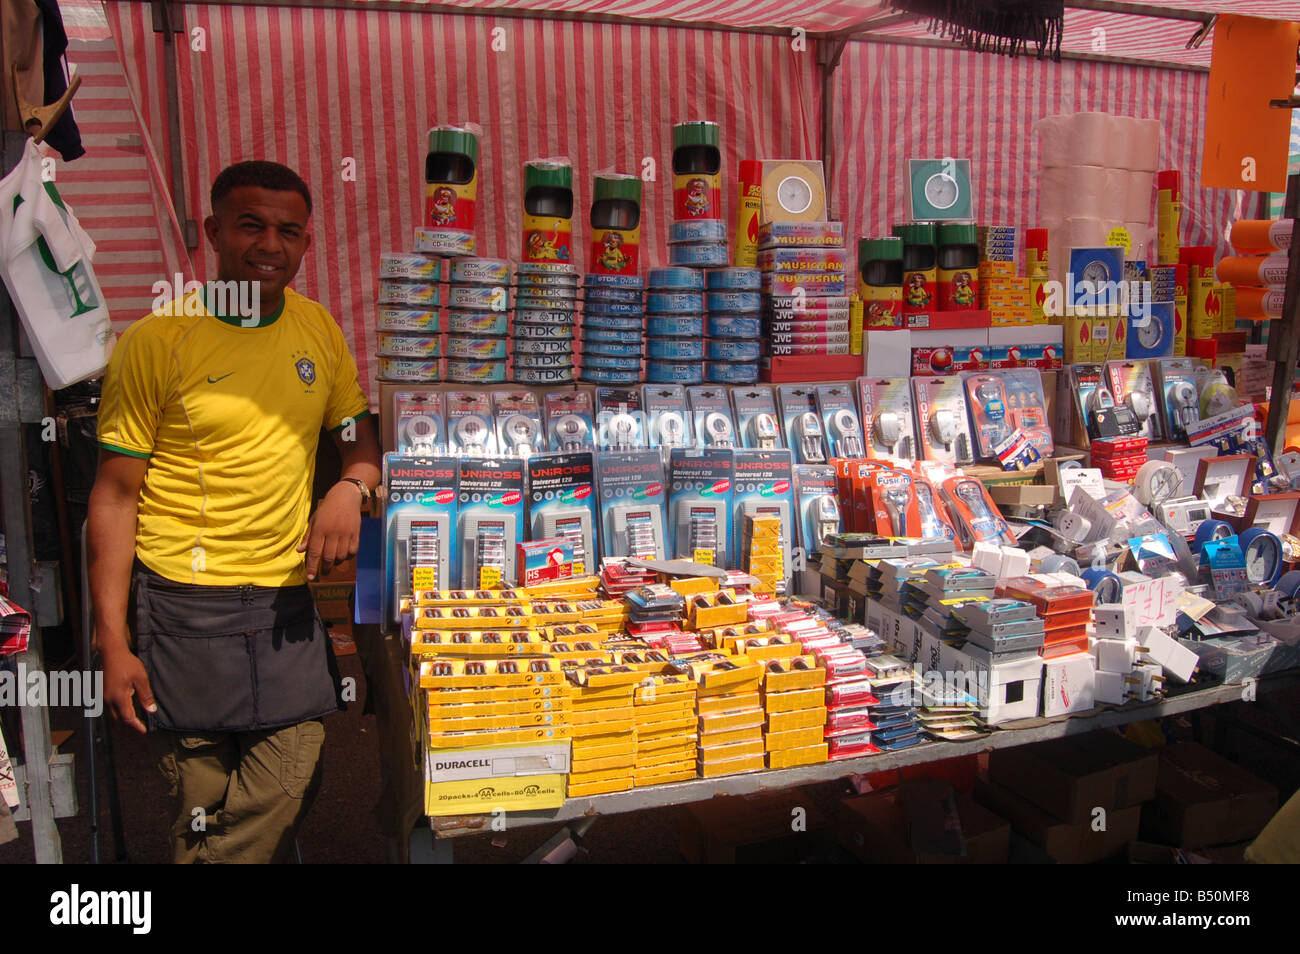 Vendors at Wembley Market - Stock Image